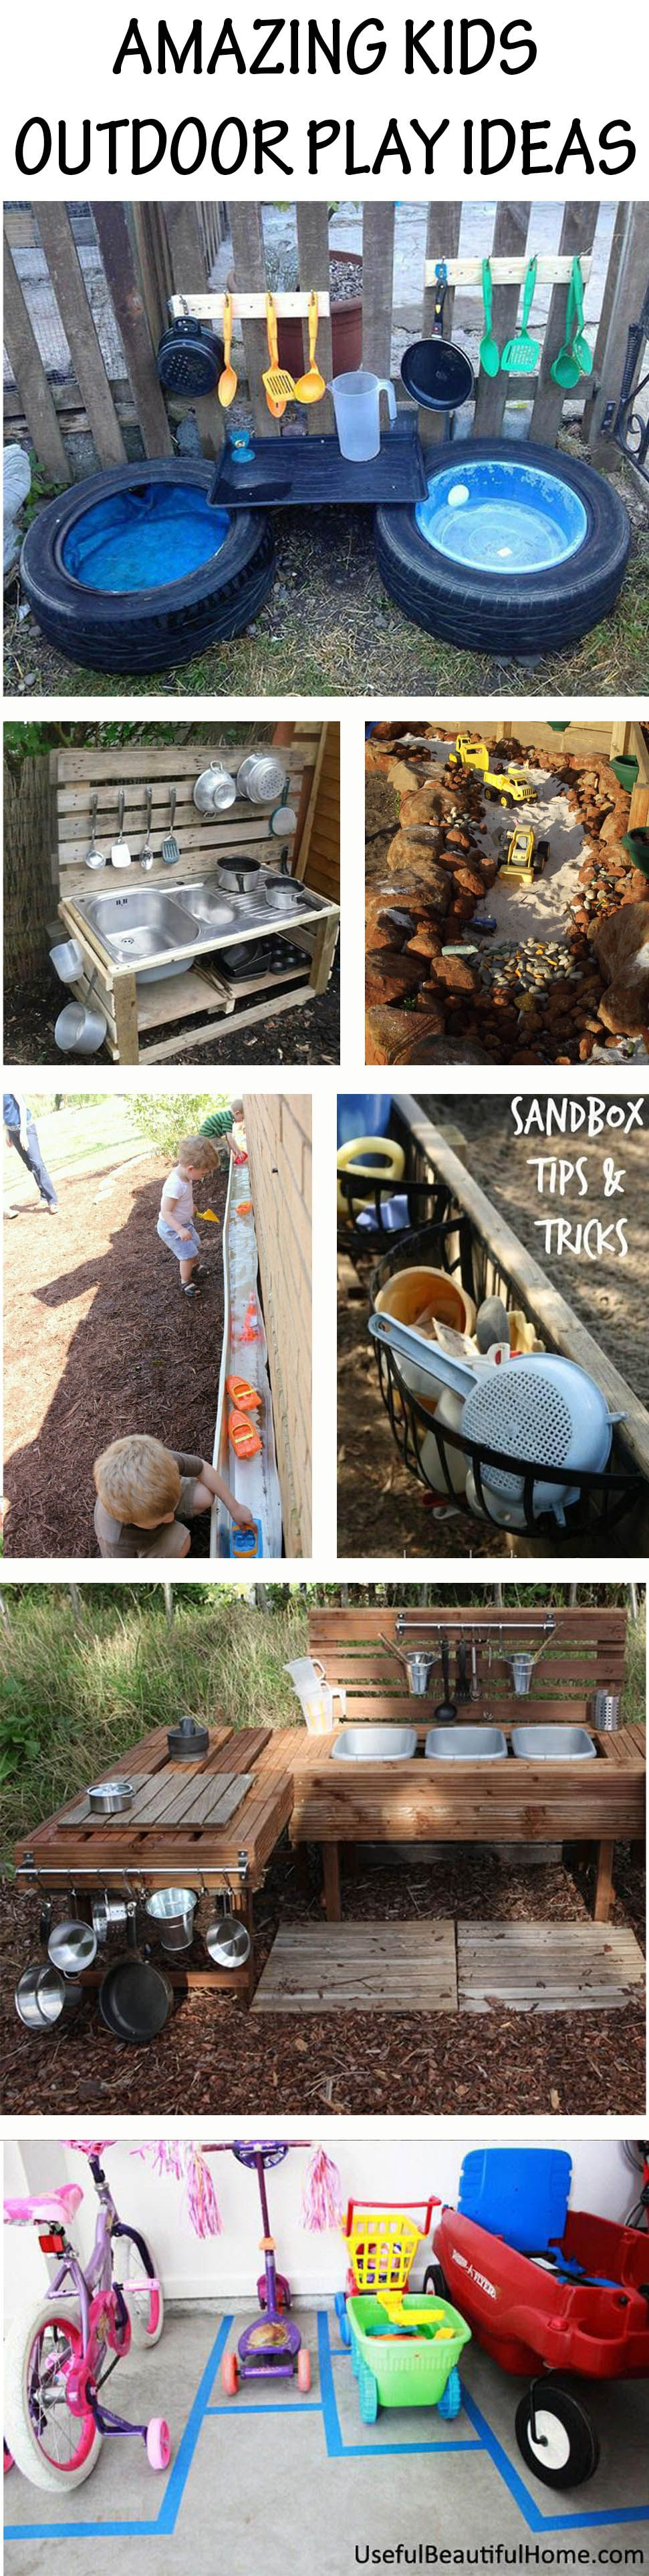 mud kitchen how cool i wish i knew how to work with wood